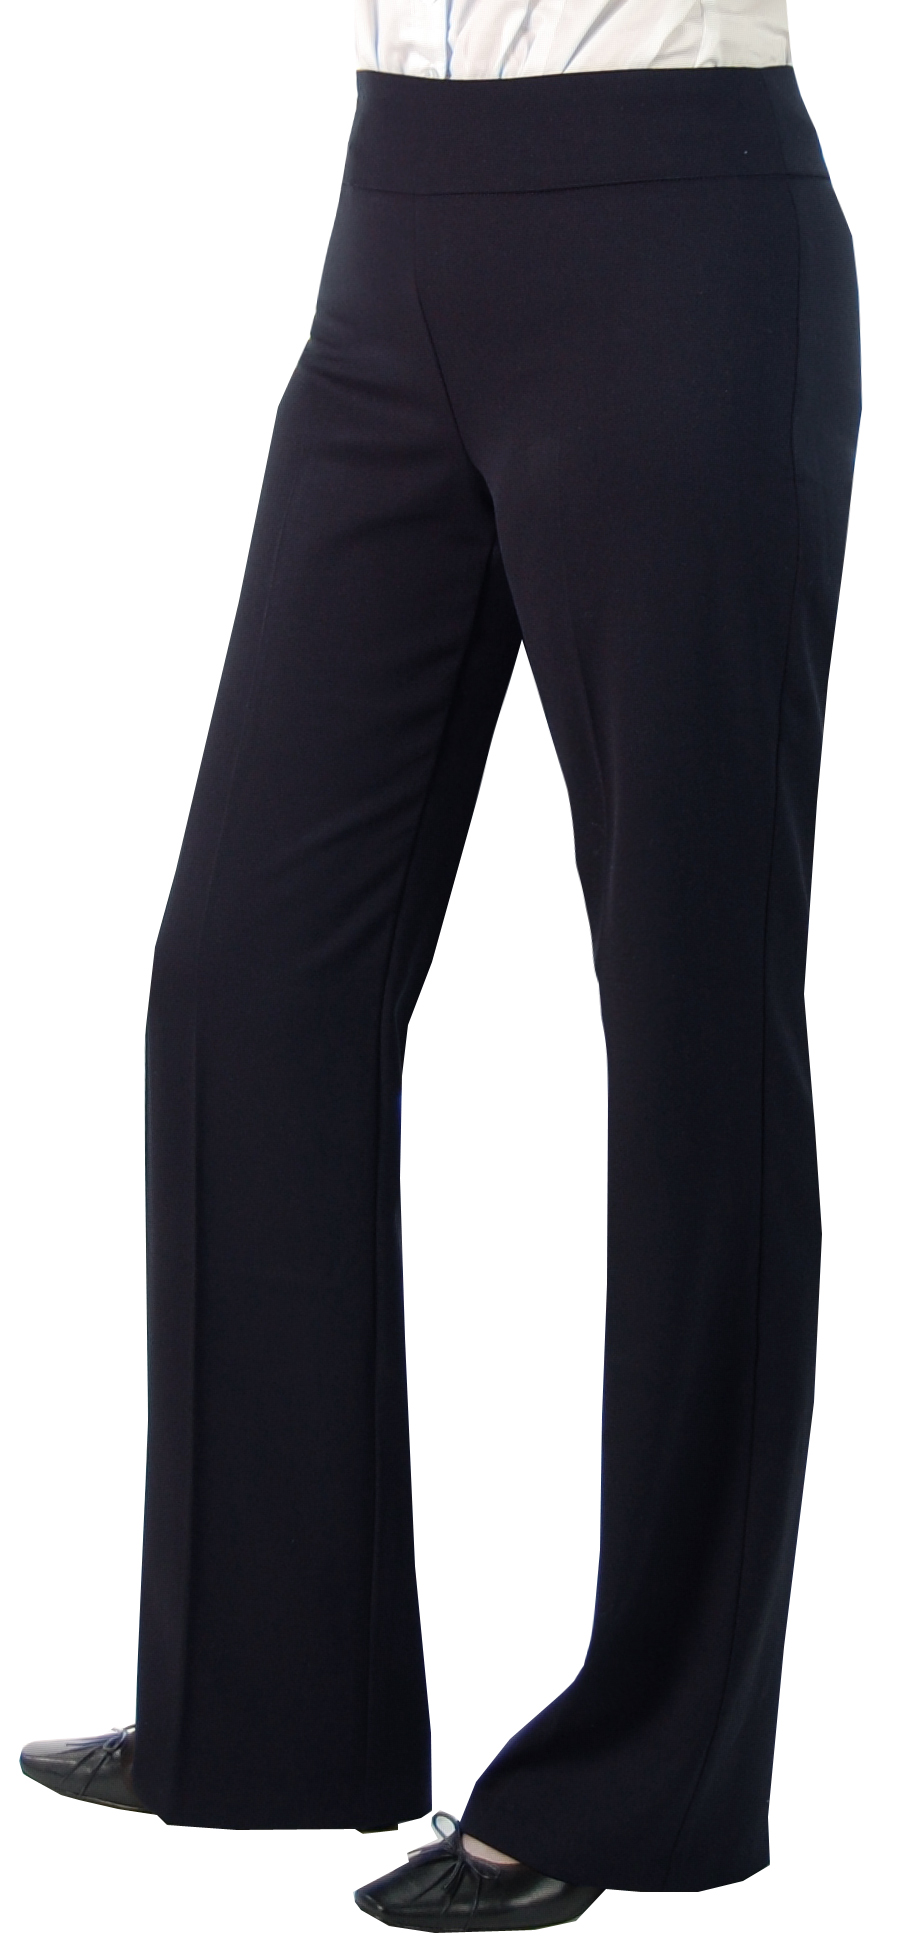 womens tall pants photo - 1